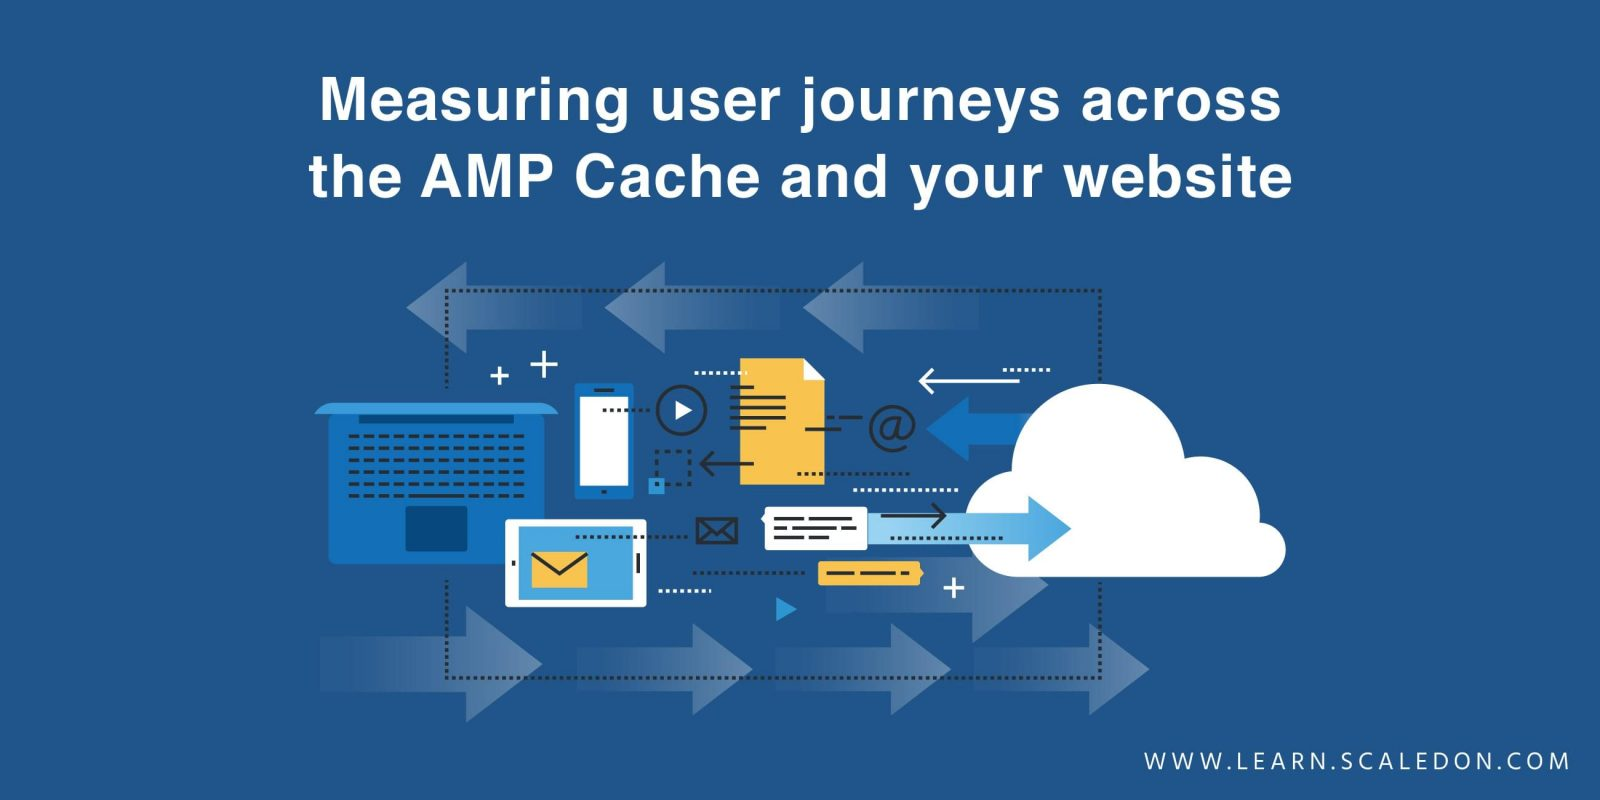 Measuring user journeys across the AMP Cache and your website